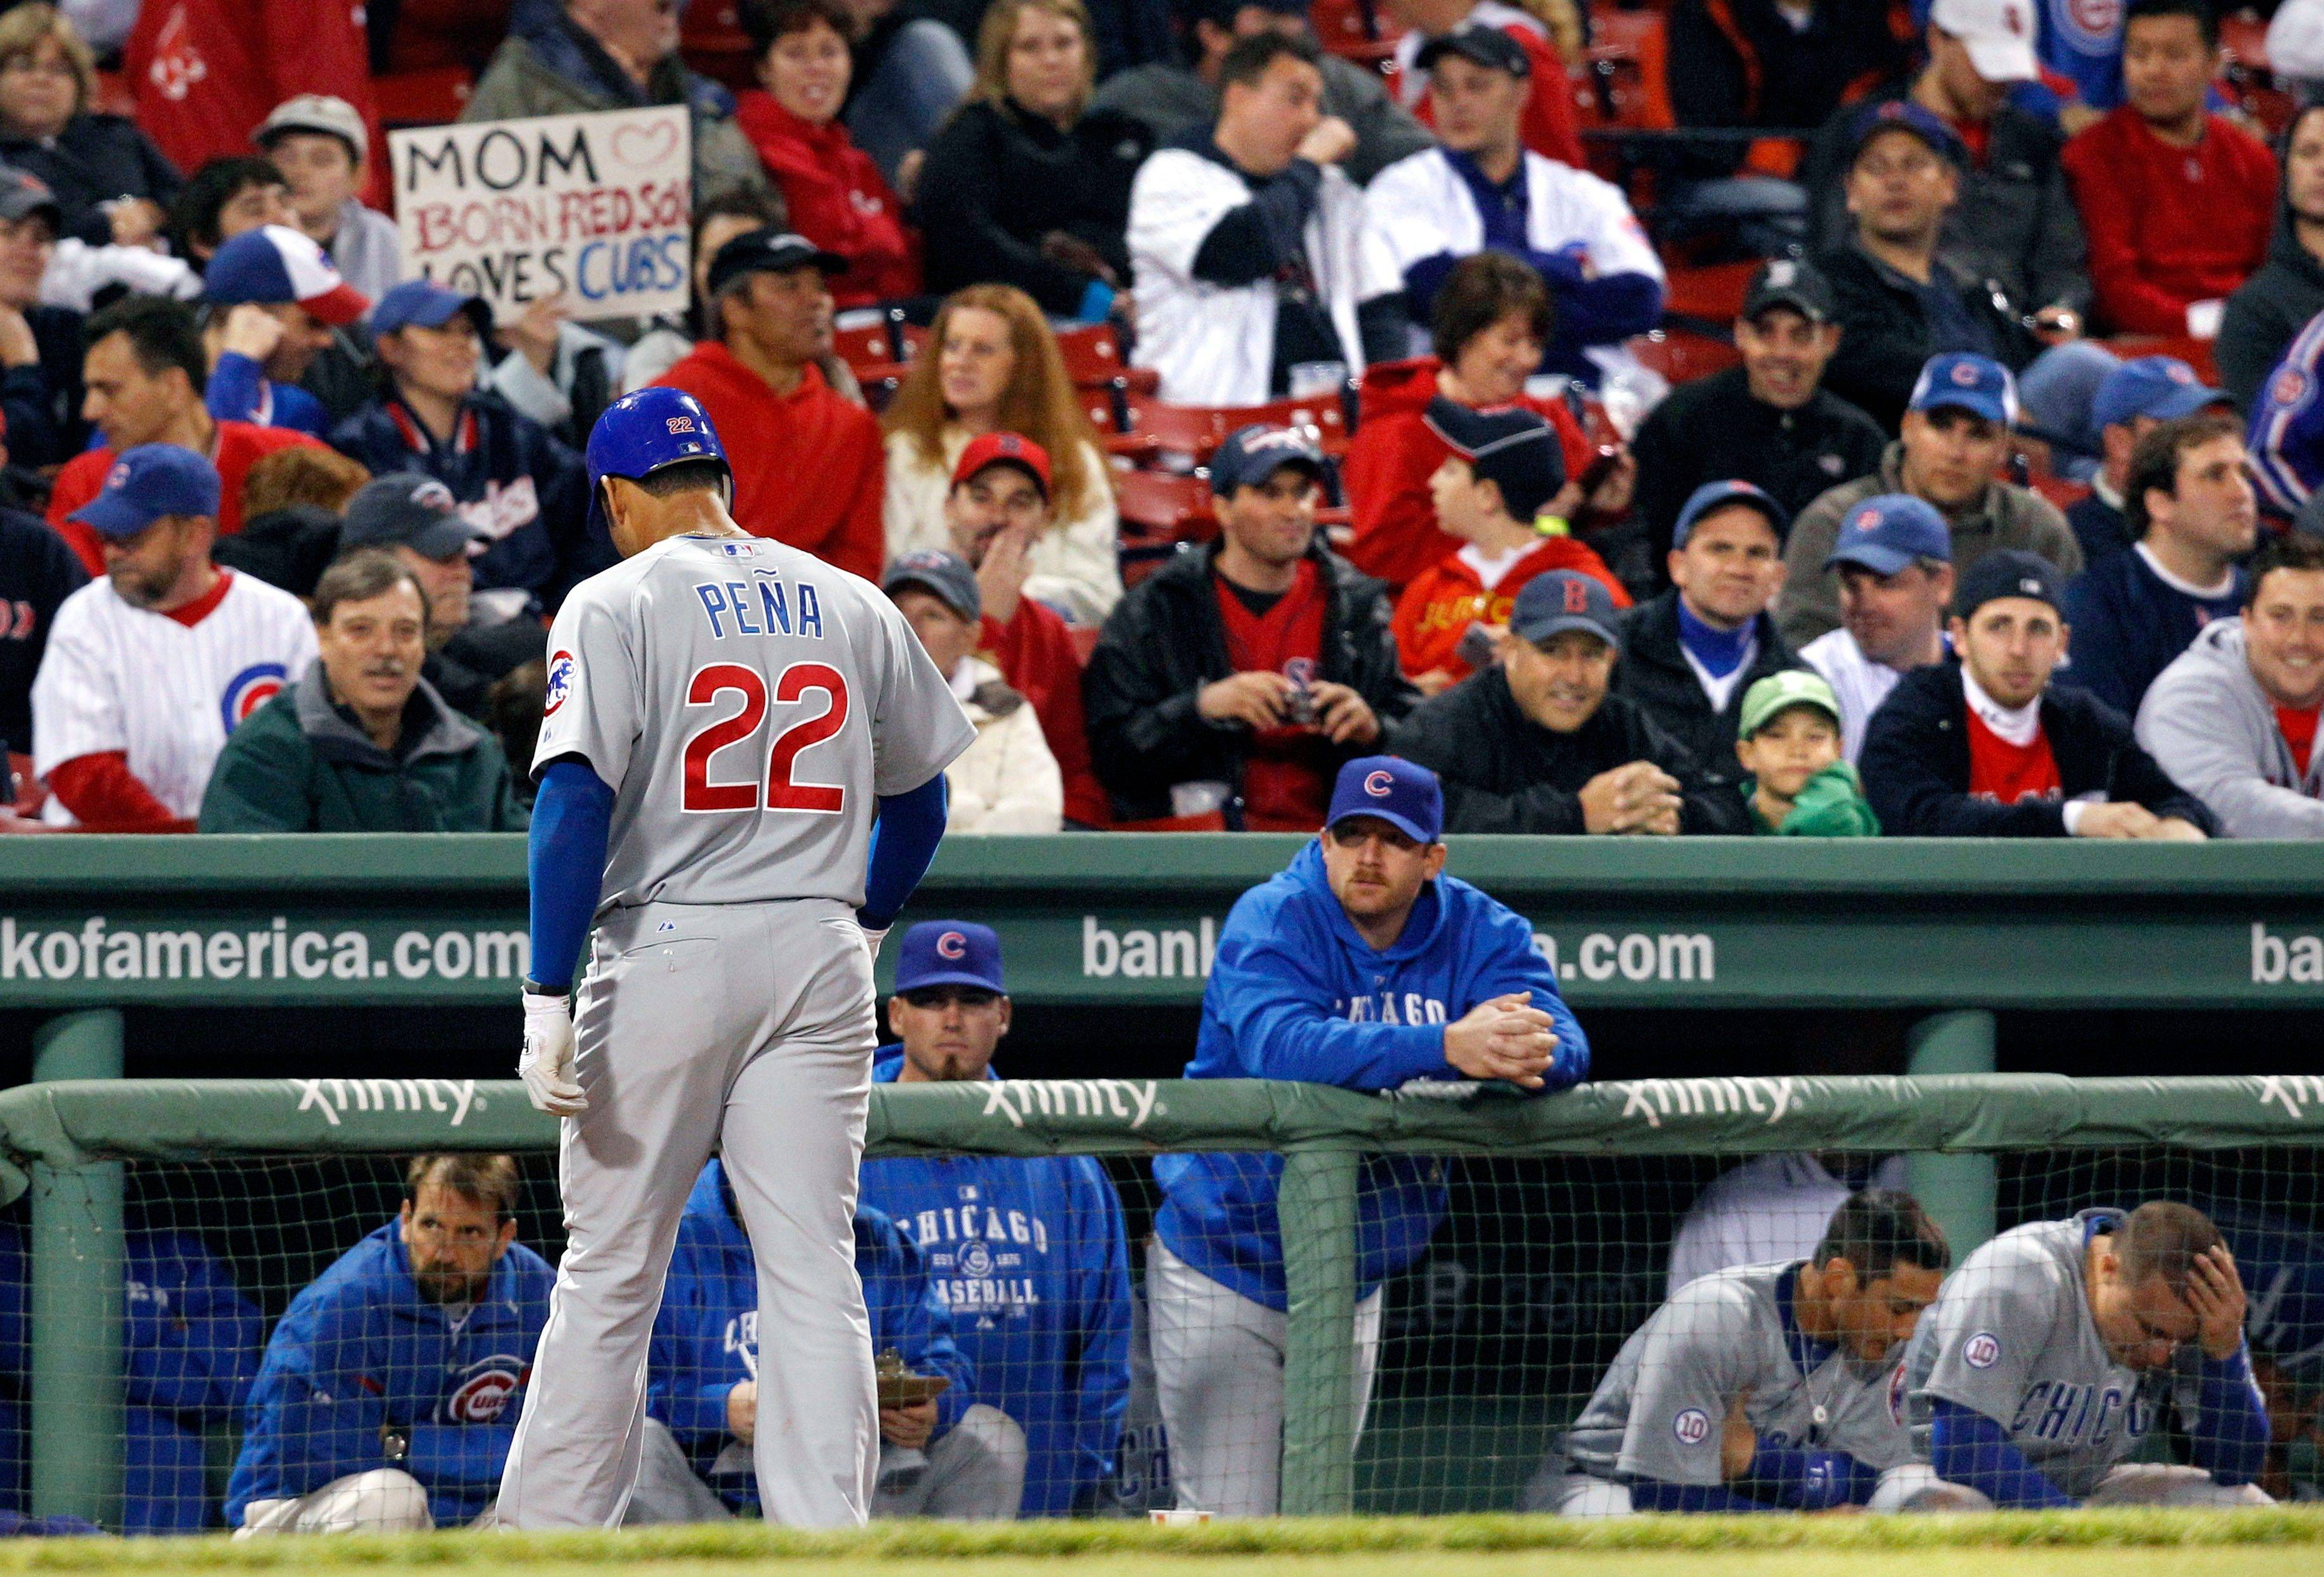 Chicago Cubs' Carlos Pena (22) walks back to the dugout after grounding out against the Boston Red Sox in the ninth inning of an interleague baseball game at Fenway Park in Boston Friday, May 20, 2011. The Red Sox won 15-5.